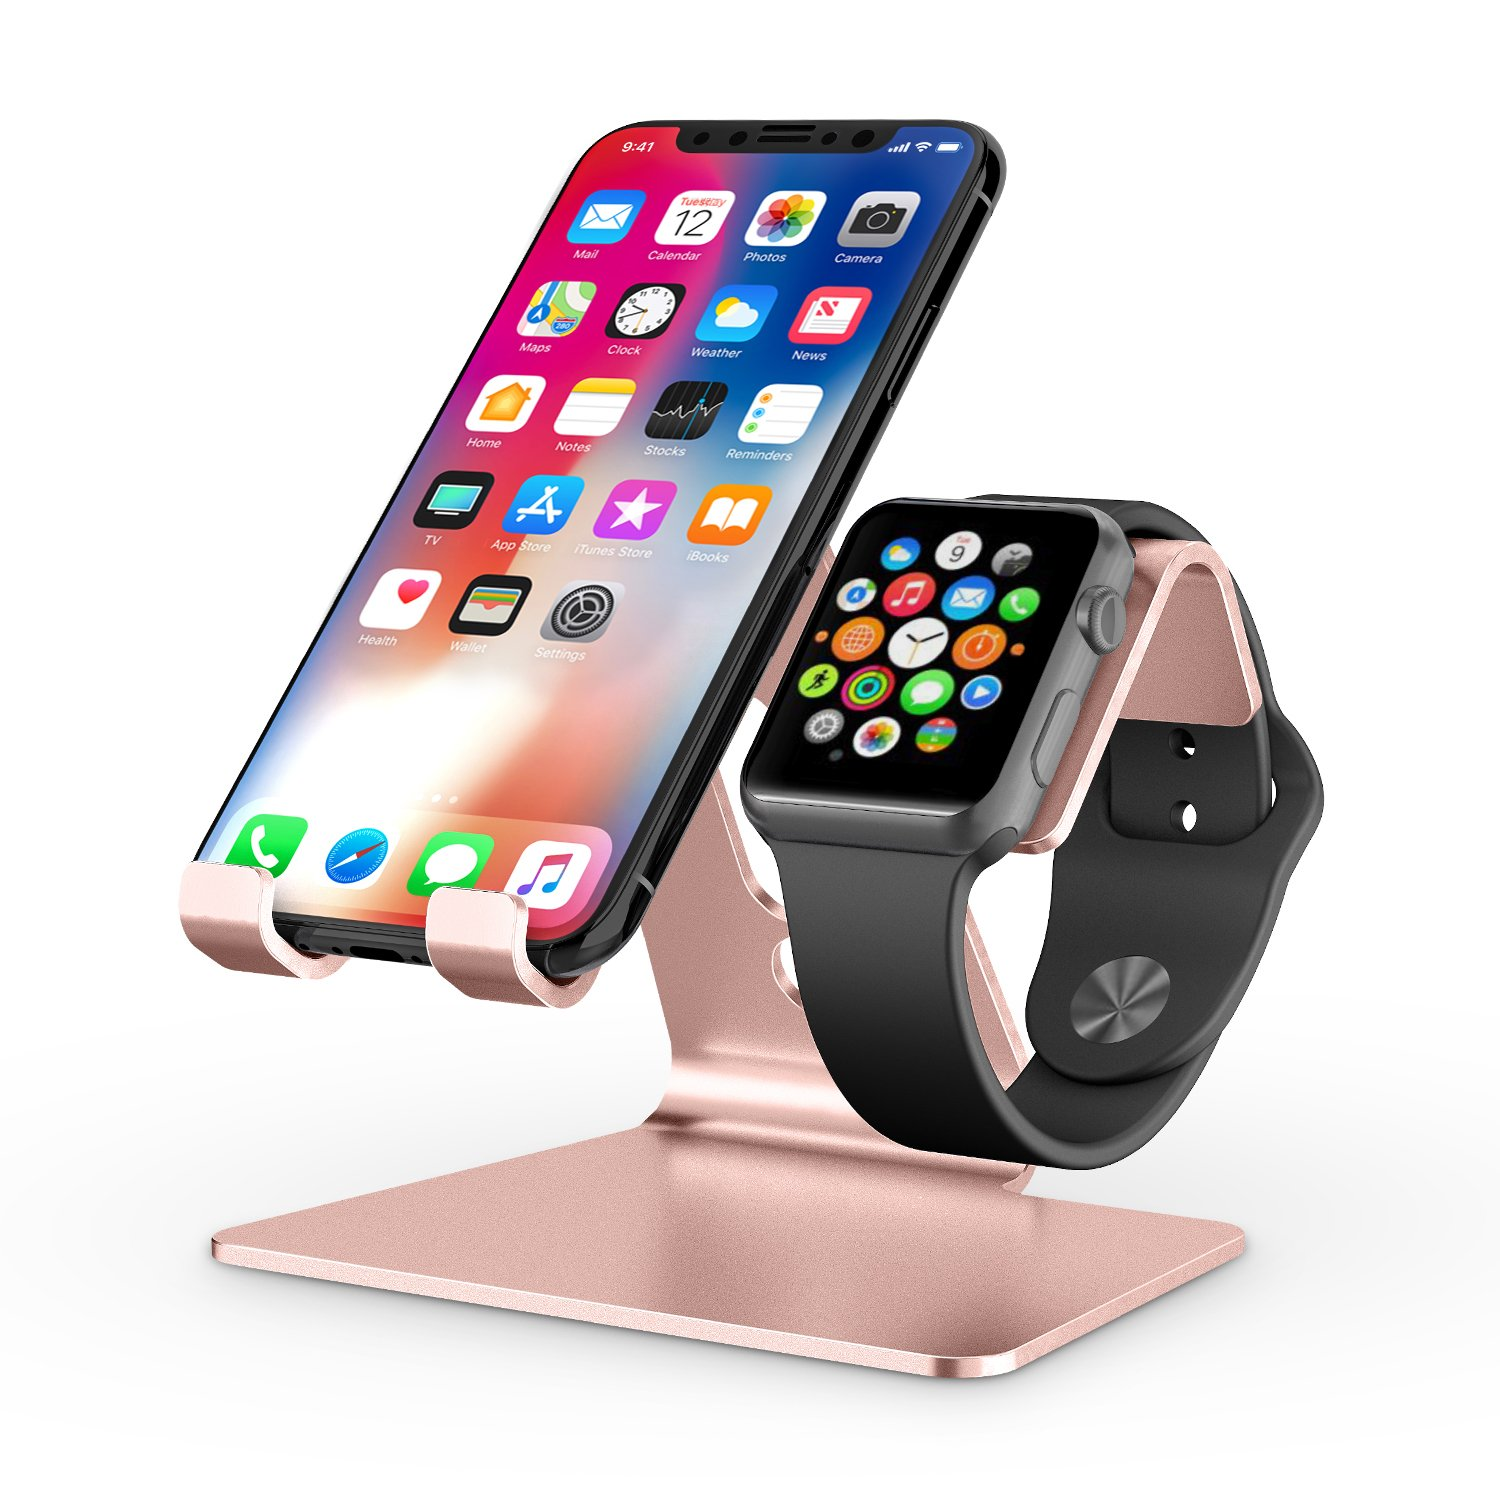 Apple Watch Stand, OMOTON 2 in 1 Universal Desktop Cell Phone Stand and Apple Watch Stand, Advanced 4mm Thickness Aluminum Stand Holder for iPhone and Apple Watch (Both 38mm & 42mm), Rose Gold by OMOTON (Image #1)